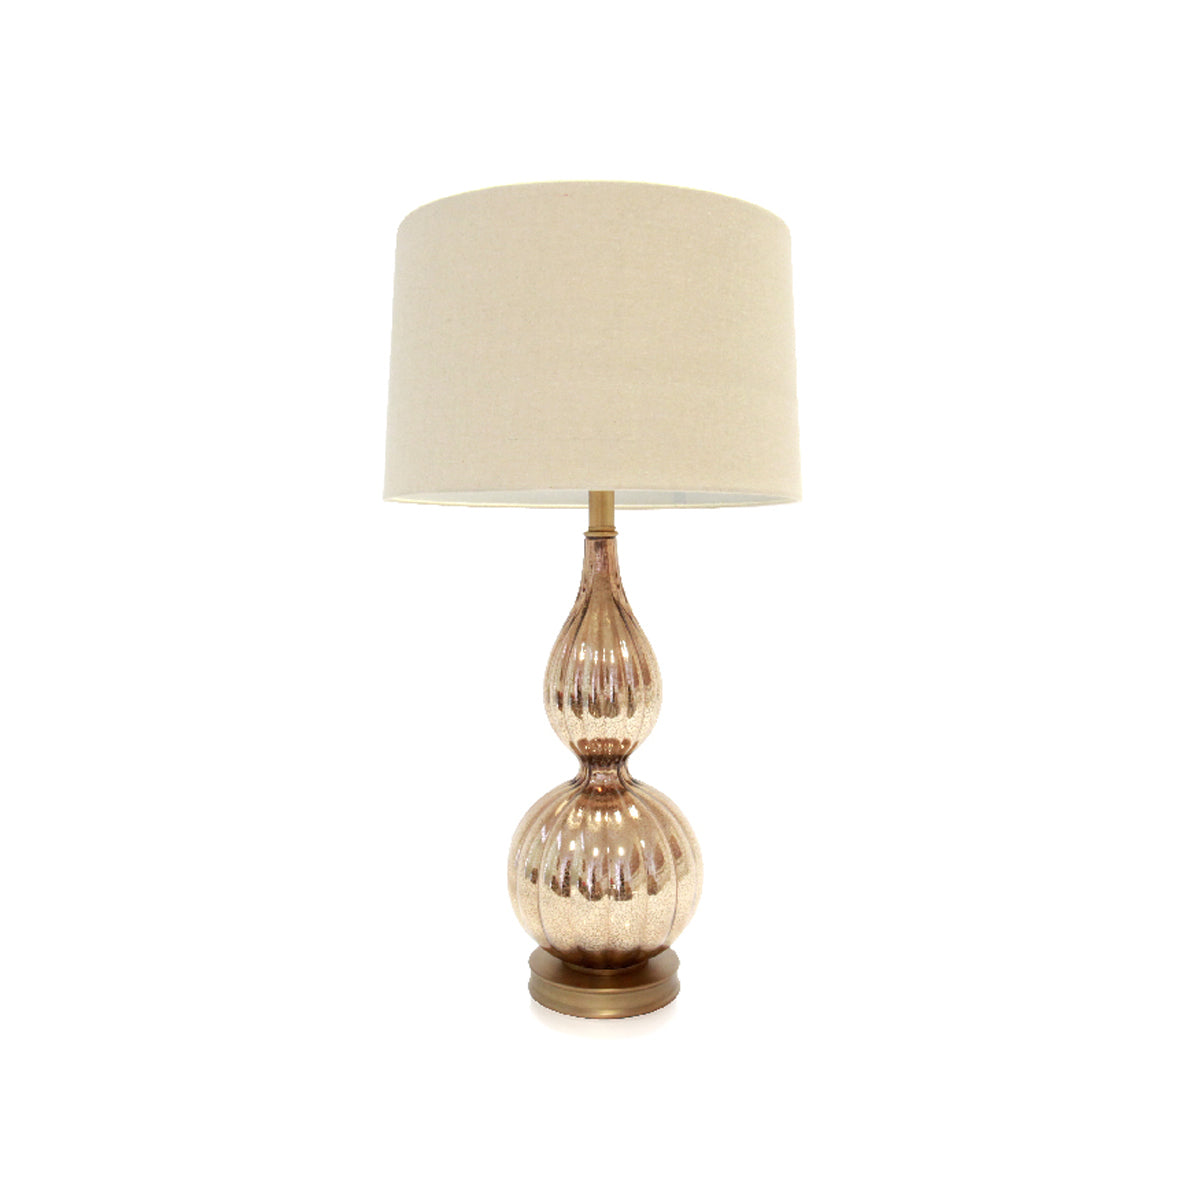 Serenity Gourd Table Lamp